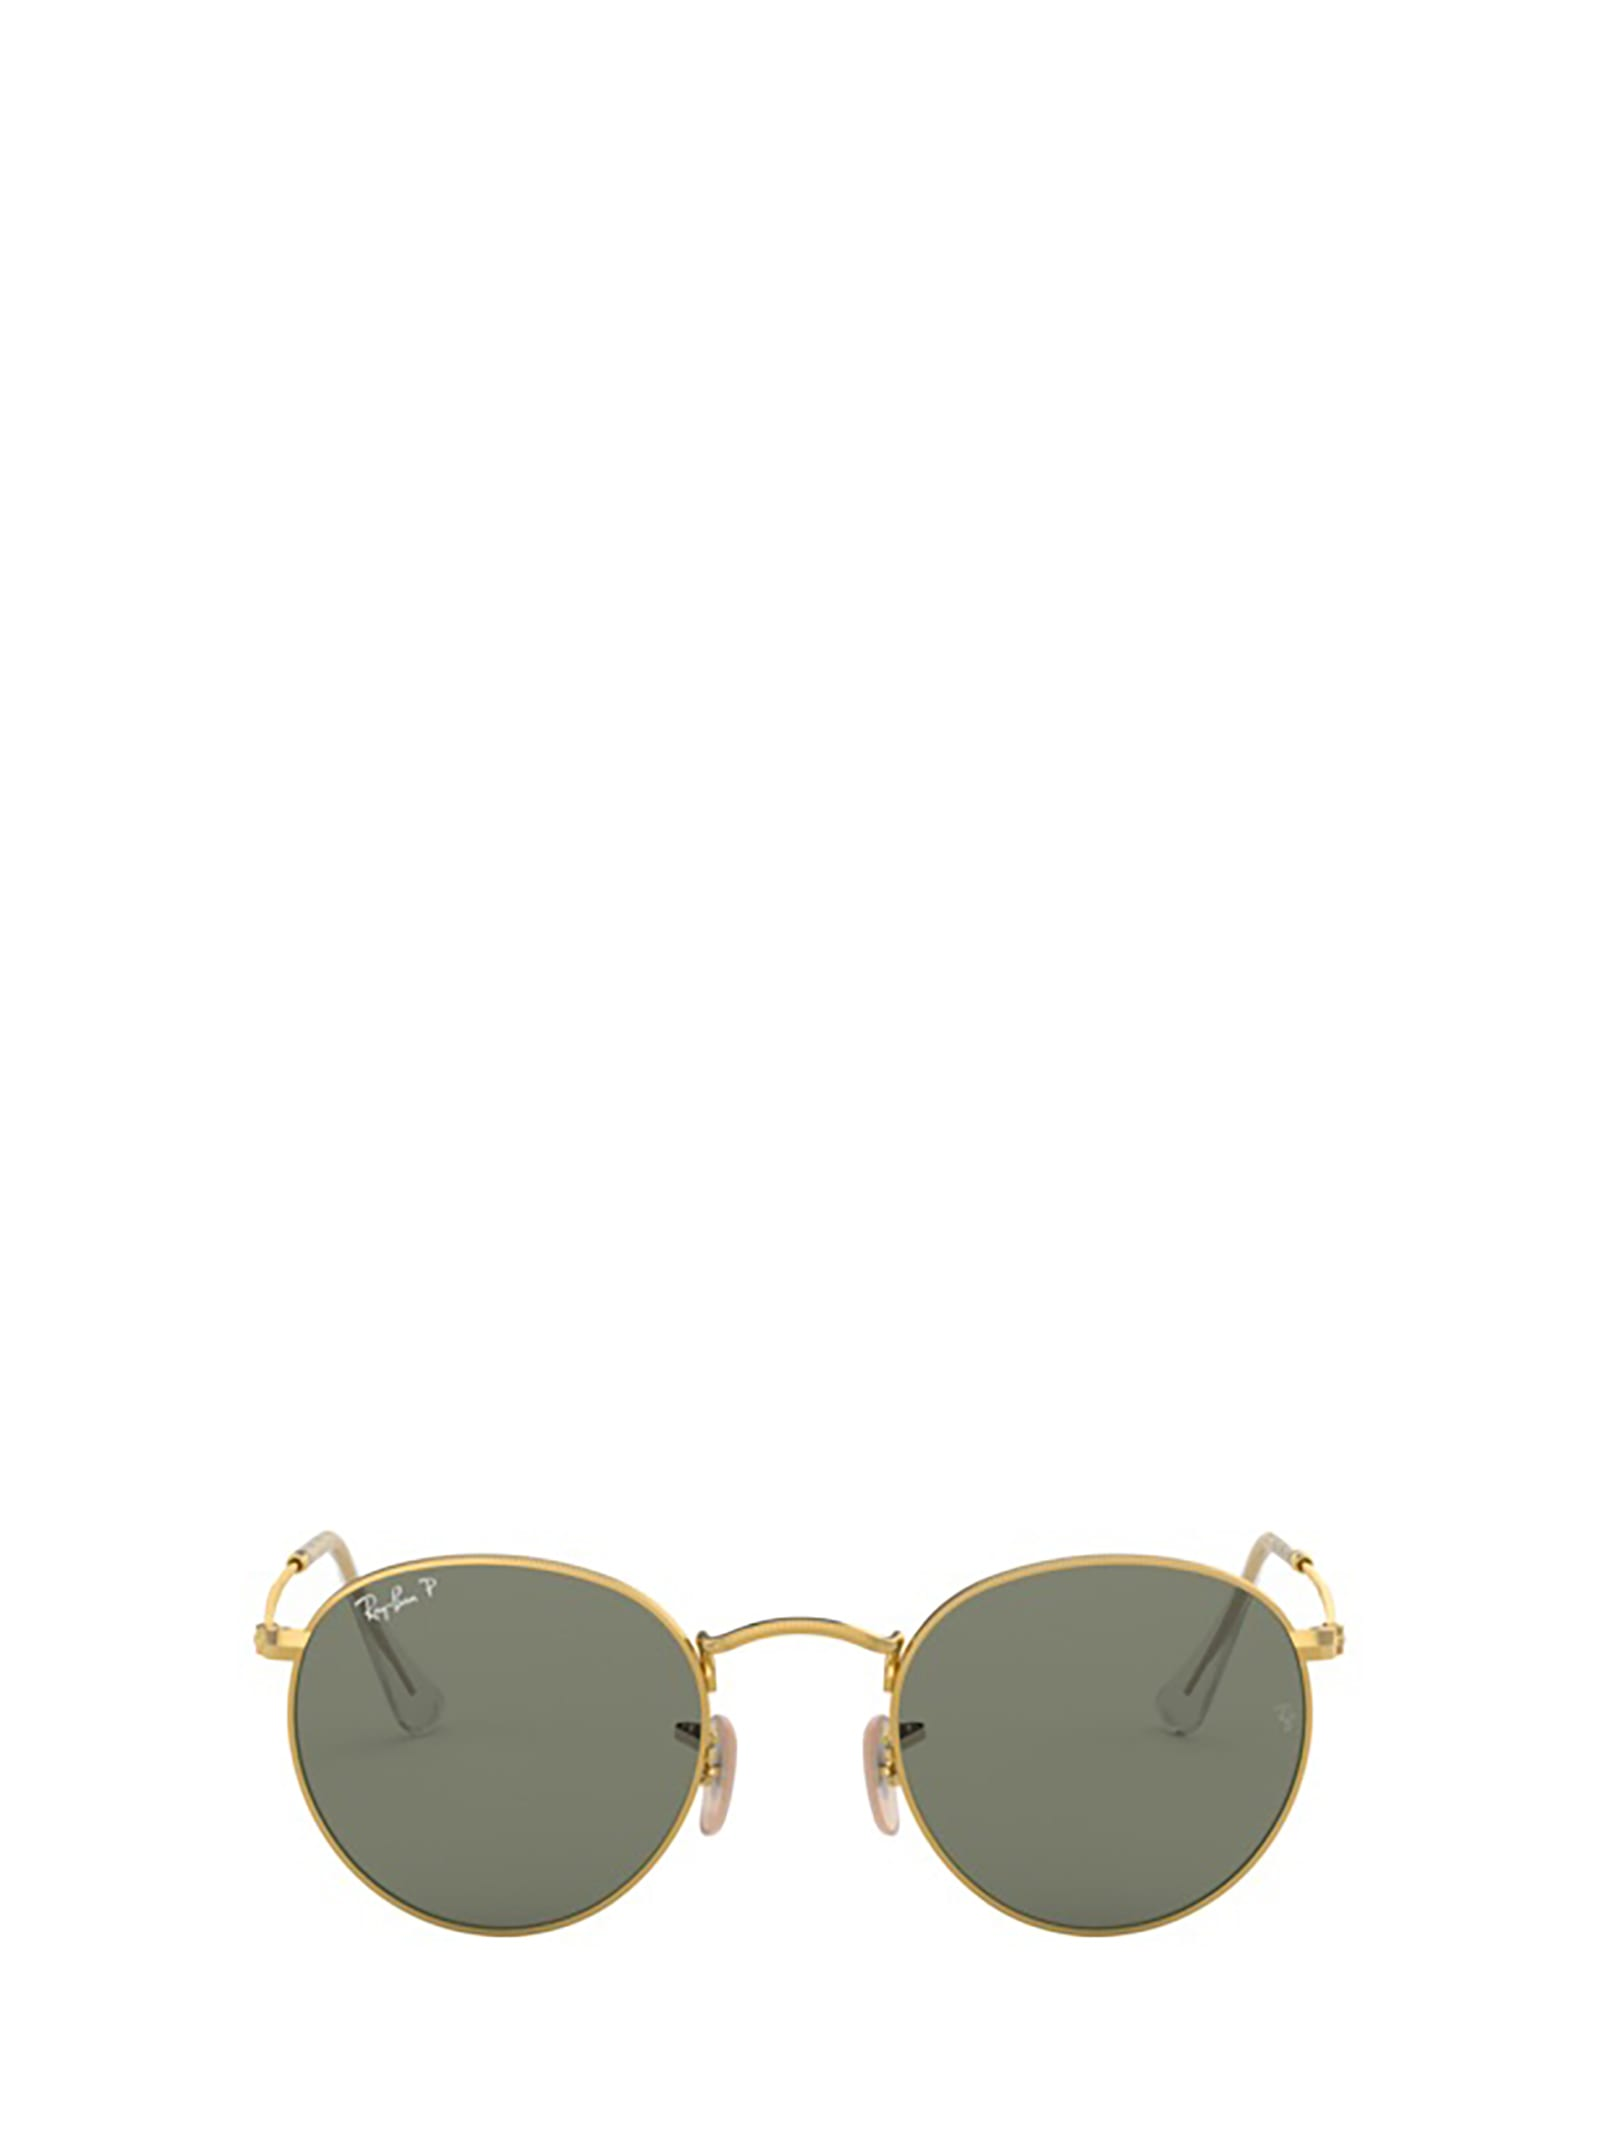 Ray-Ban Ray-ban Rb3447 Arista Sunglasses